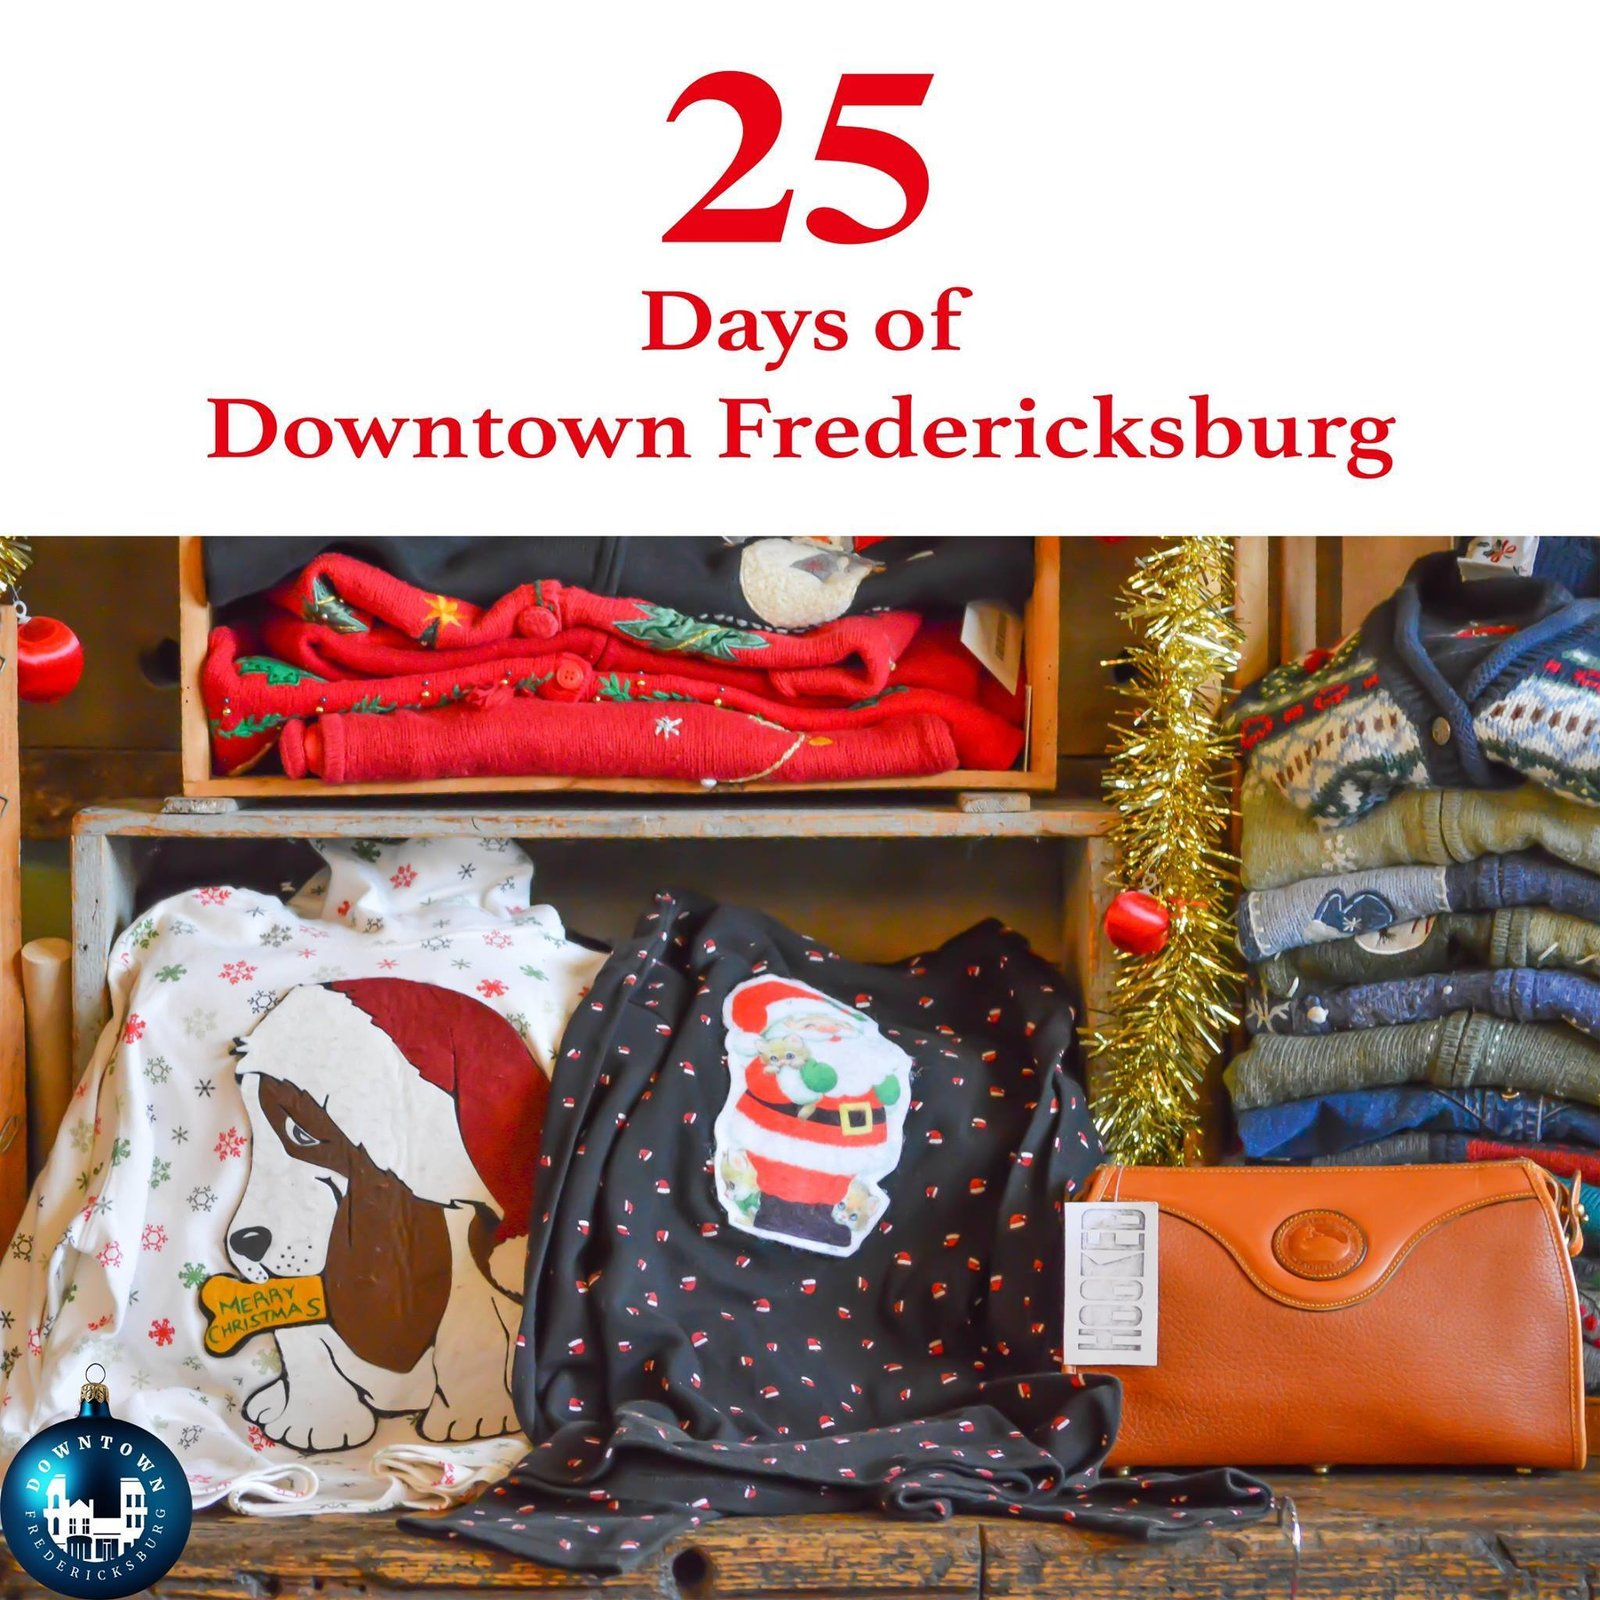 Gift Twenty-one 'Tis the season to be tacky. Hooked has an array of Christmas cardigans guaranteed to make any Scrooge smile. https://www.facebook.com/DowntownFredericksburg/  25 Days of Downtown Fredericksburg